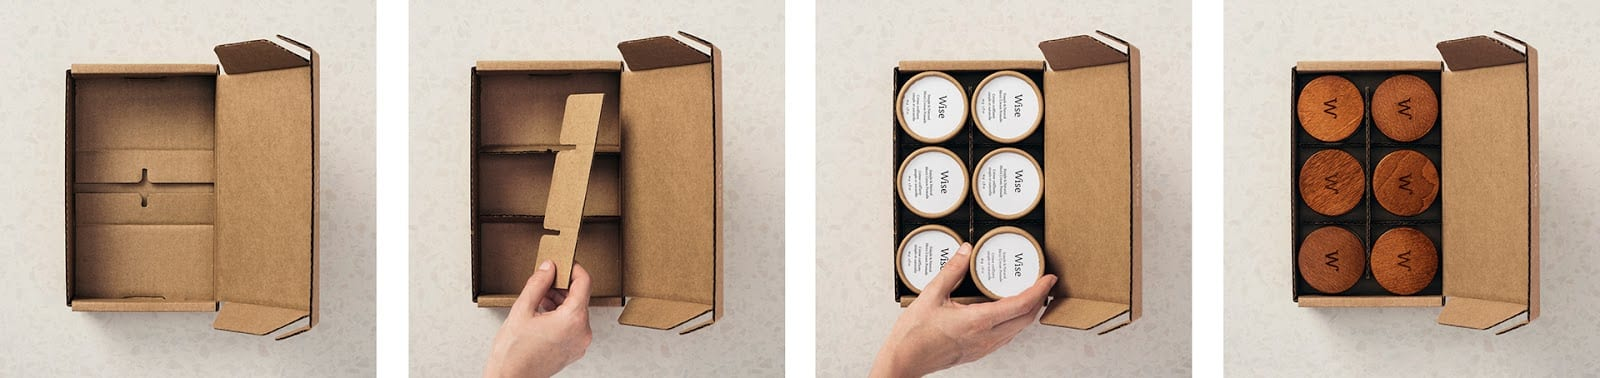 Wise Mens Care Brand Identity and Packaging 014 - Ach, tie obaly – péče Wise Men